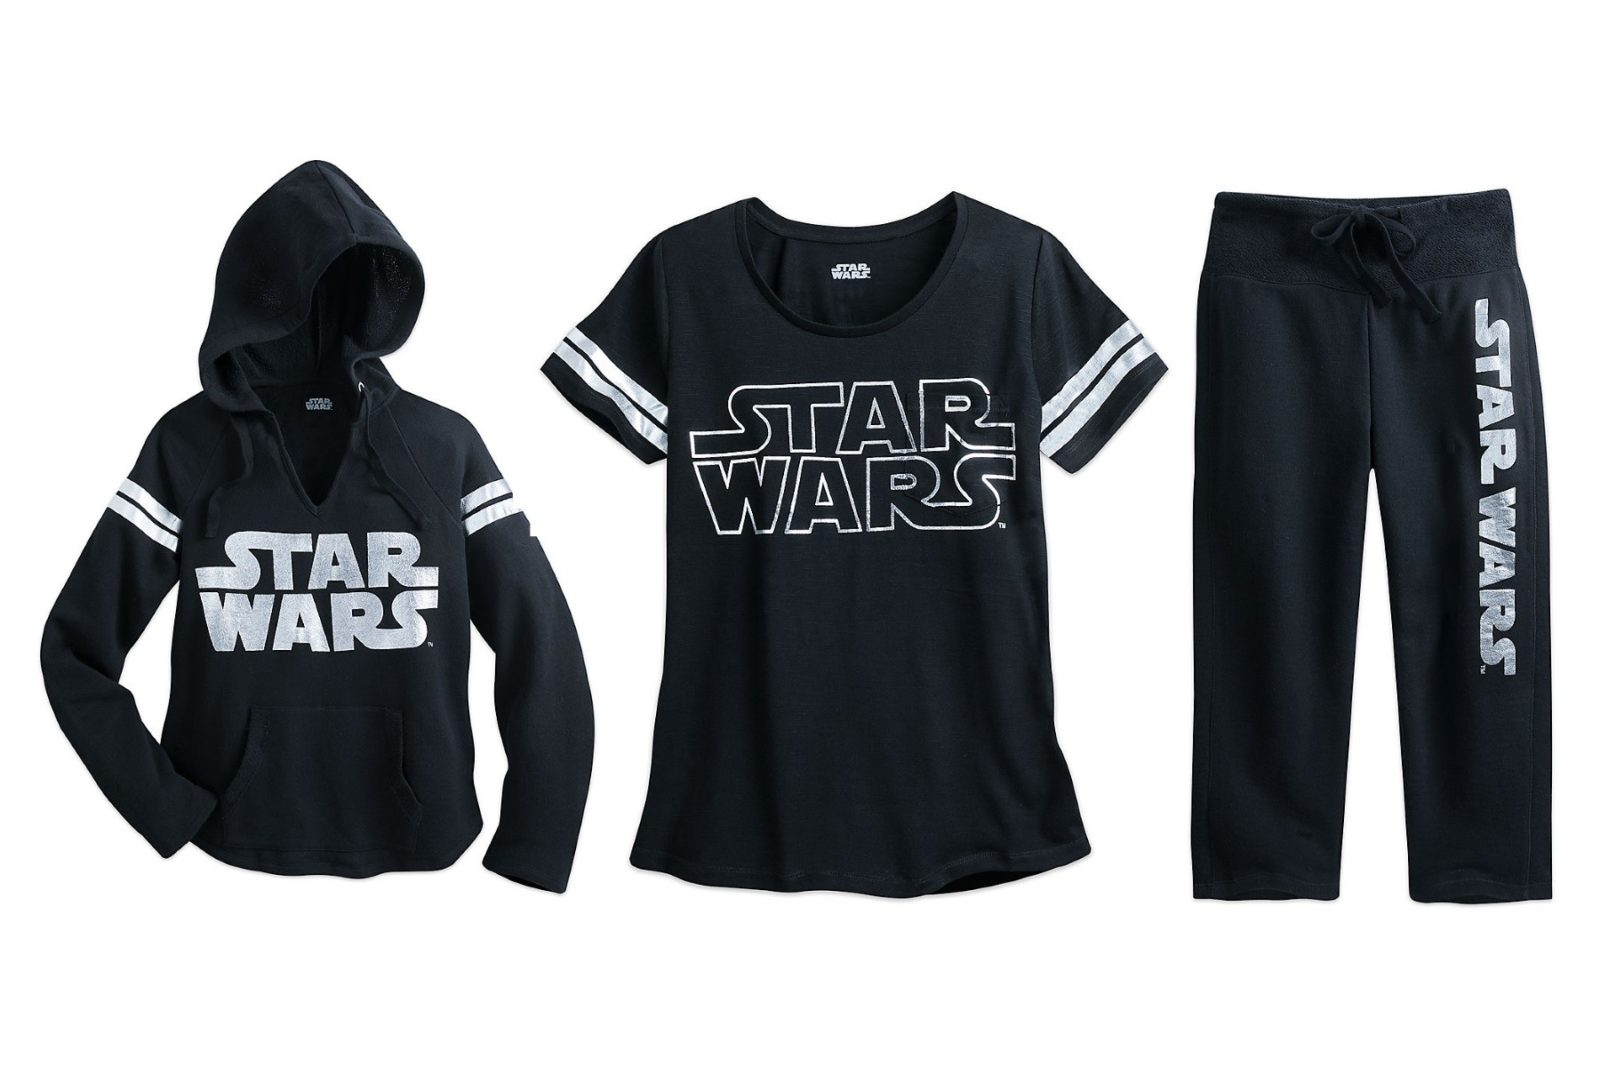 New women's Star Wars logo apparel range